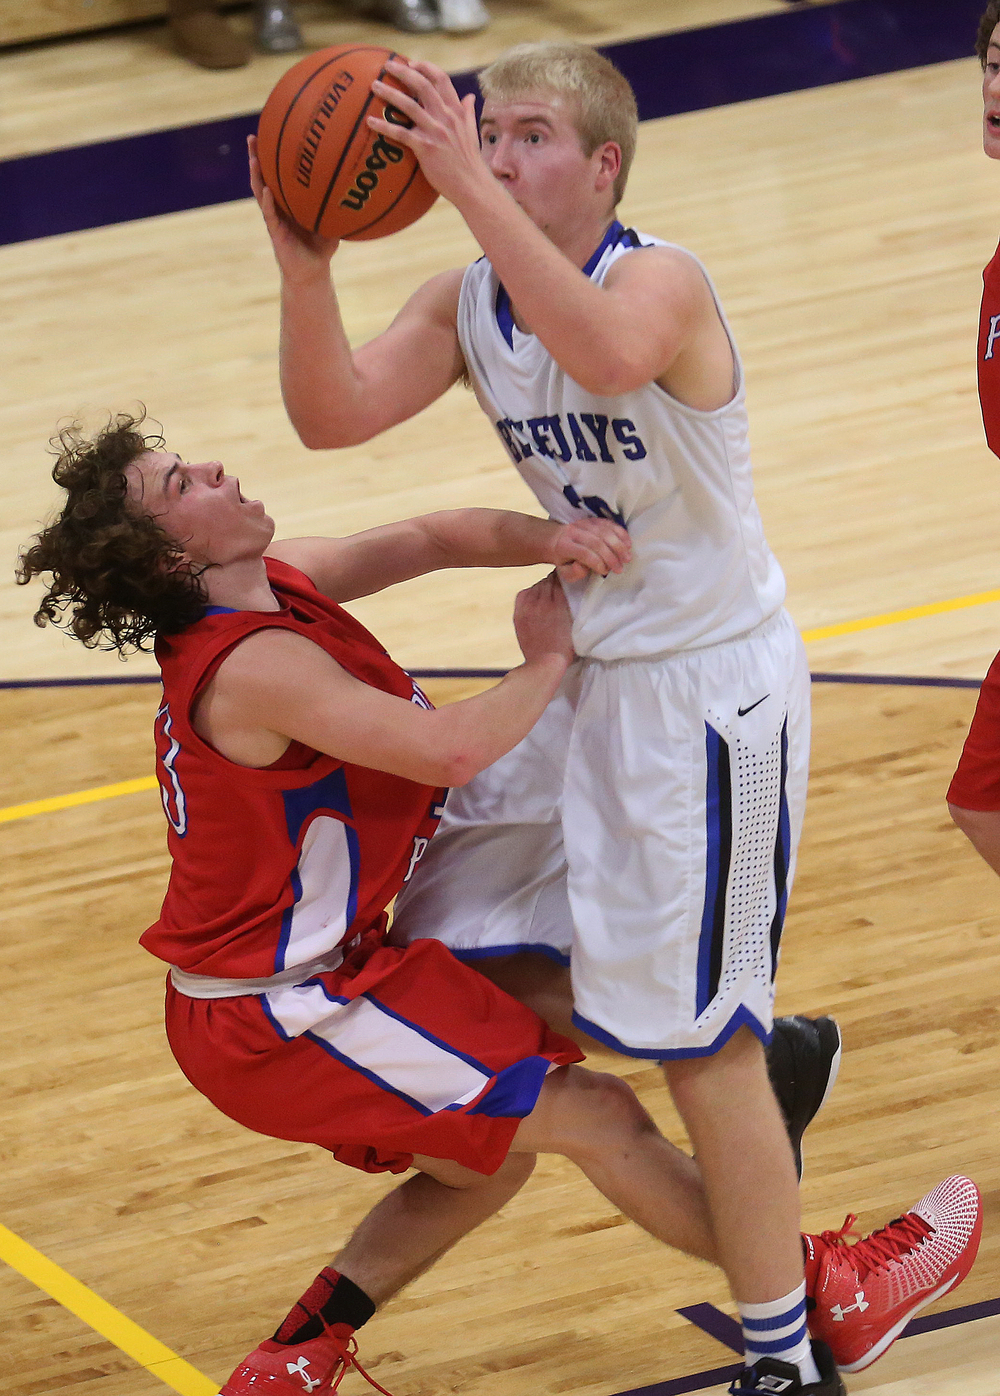 In second half action, Bluejays player Michael McCurdy prepares to put up two points while Cardinals defender Cole Greer puts on the pressure. Petersburg PORTA defeated Pleasant Plains 58-50 on the second day of action at the Williamsville Holiday basketball tournament at Williamsville High School on Saturday, Dec. 27, 2014. David Spencer/The State Journal-Register